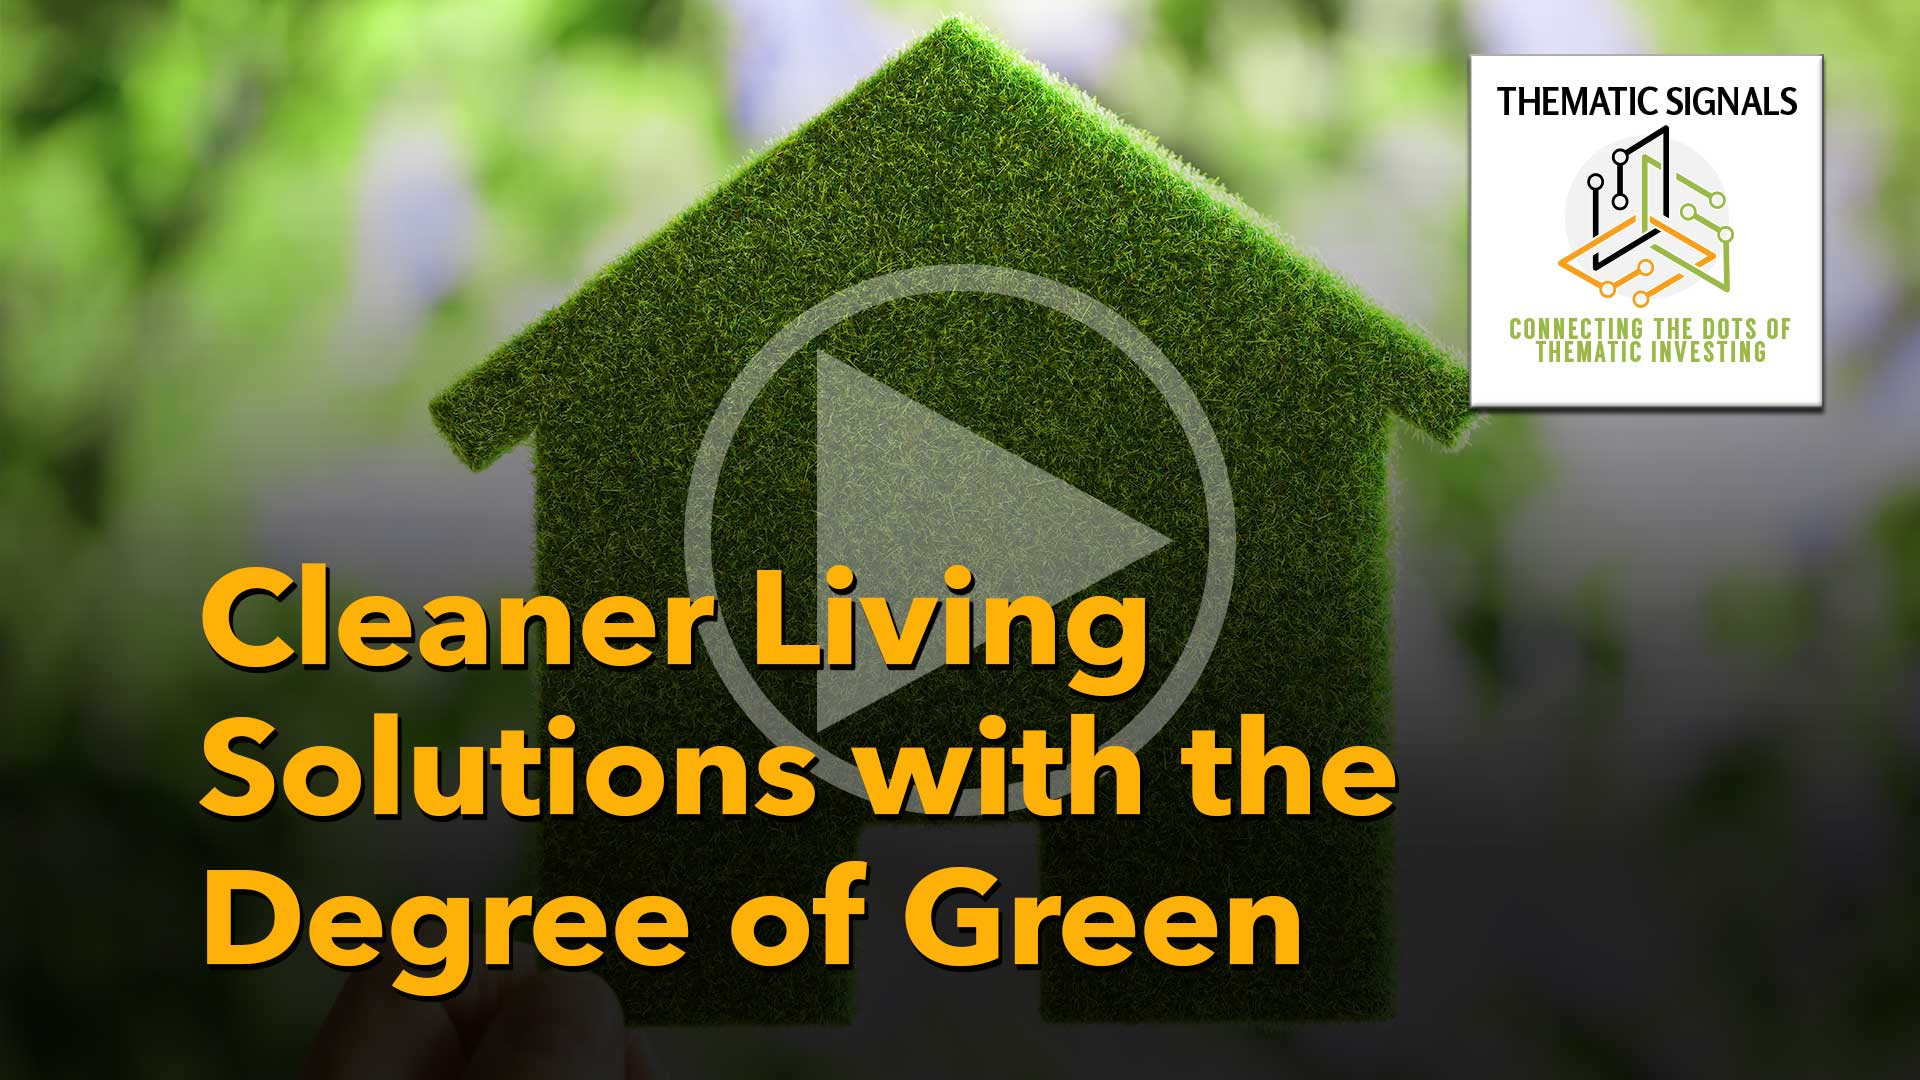 Ep 13 Cleaner Living Solutions with the Degree of Green